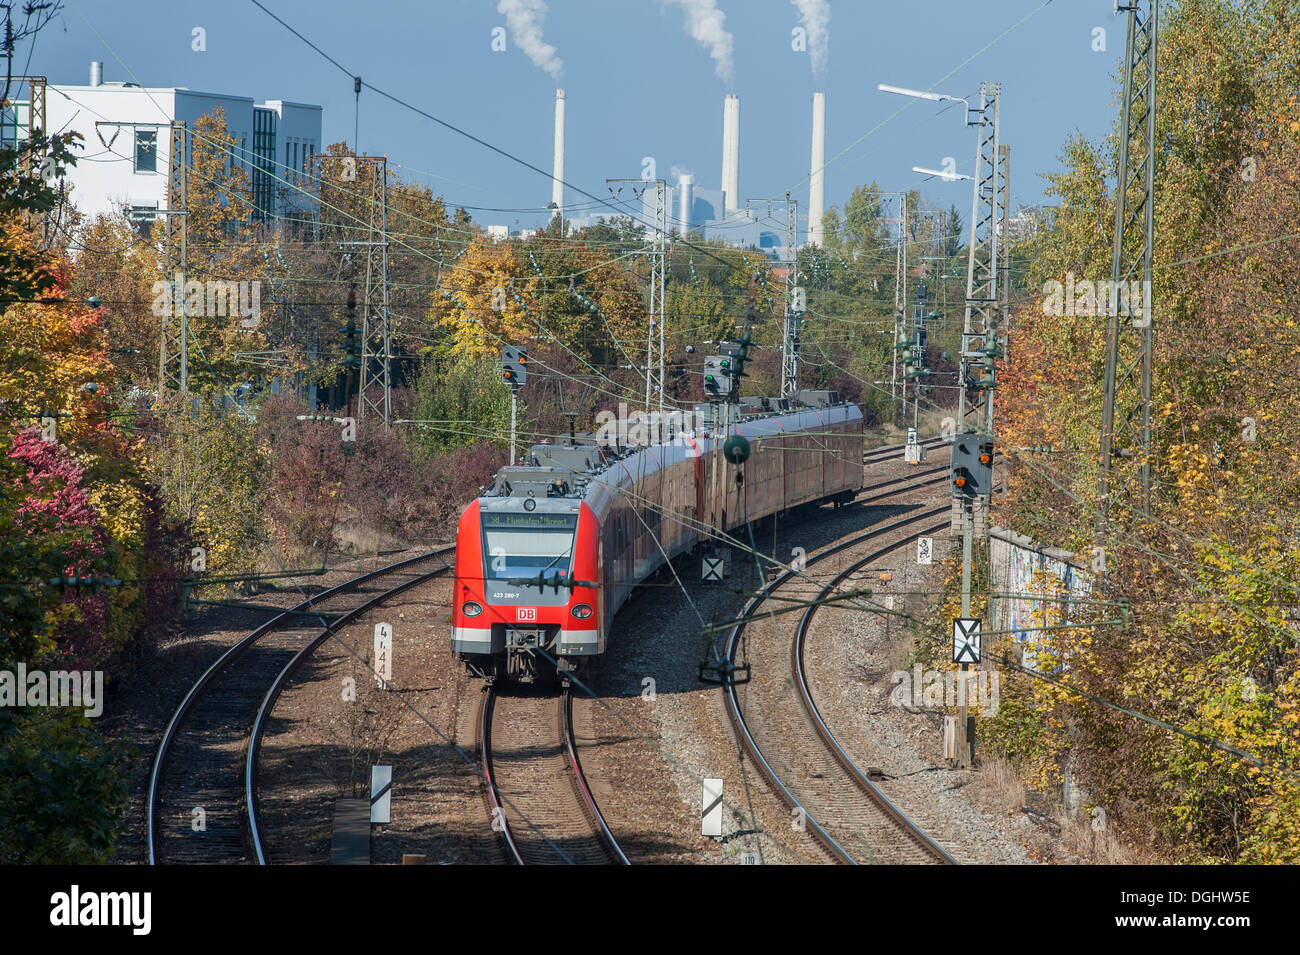 S-Bahn, suburban railway, driving on rail track near Daglfing, Munich, Bavaria - Stock Image